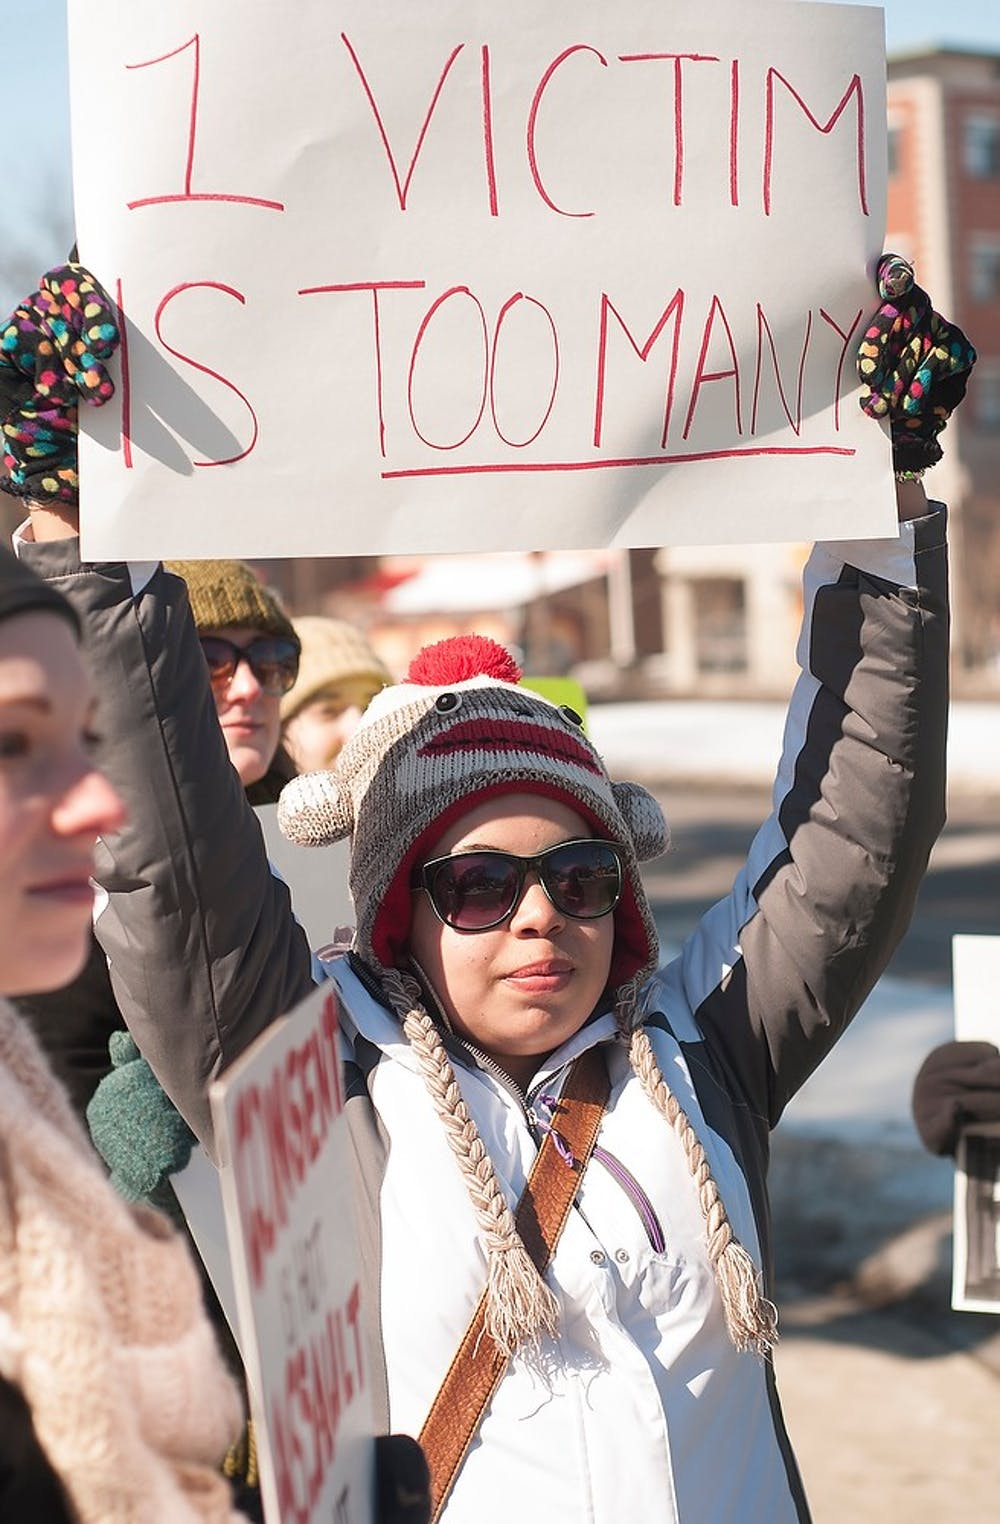 <p>English sophomore Kelsey Wiley holds up a sign Feb. 28, 2015, during the V-Day March from the Union, 49 Abbot Rd., to the Wharton Center on 750 East Shaw Lane. Individuals taking part in the march held signs protesting sexual violence and rape culture. Alice Kole/The State News</p>